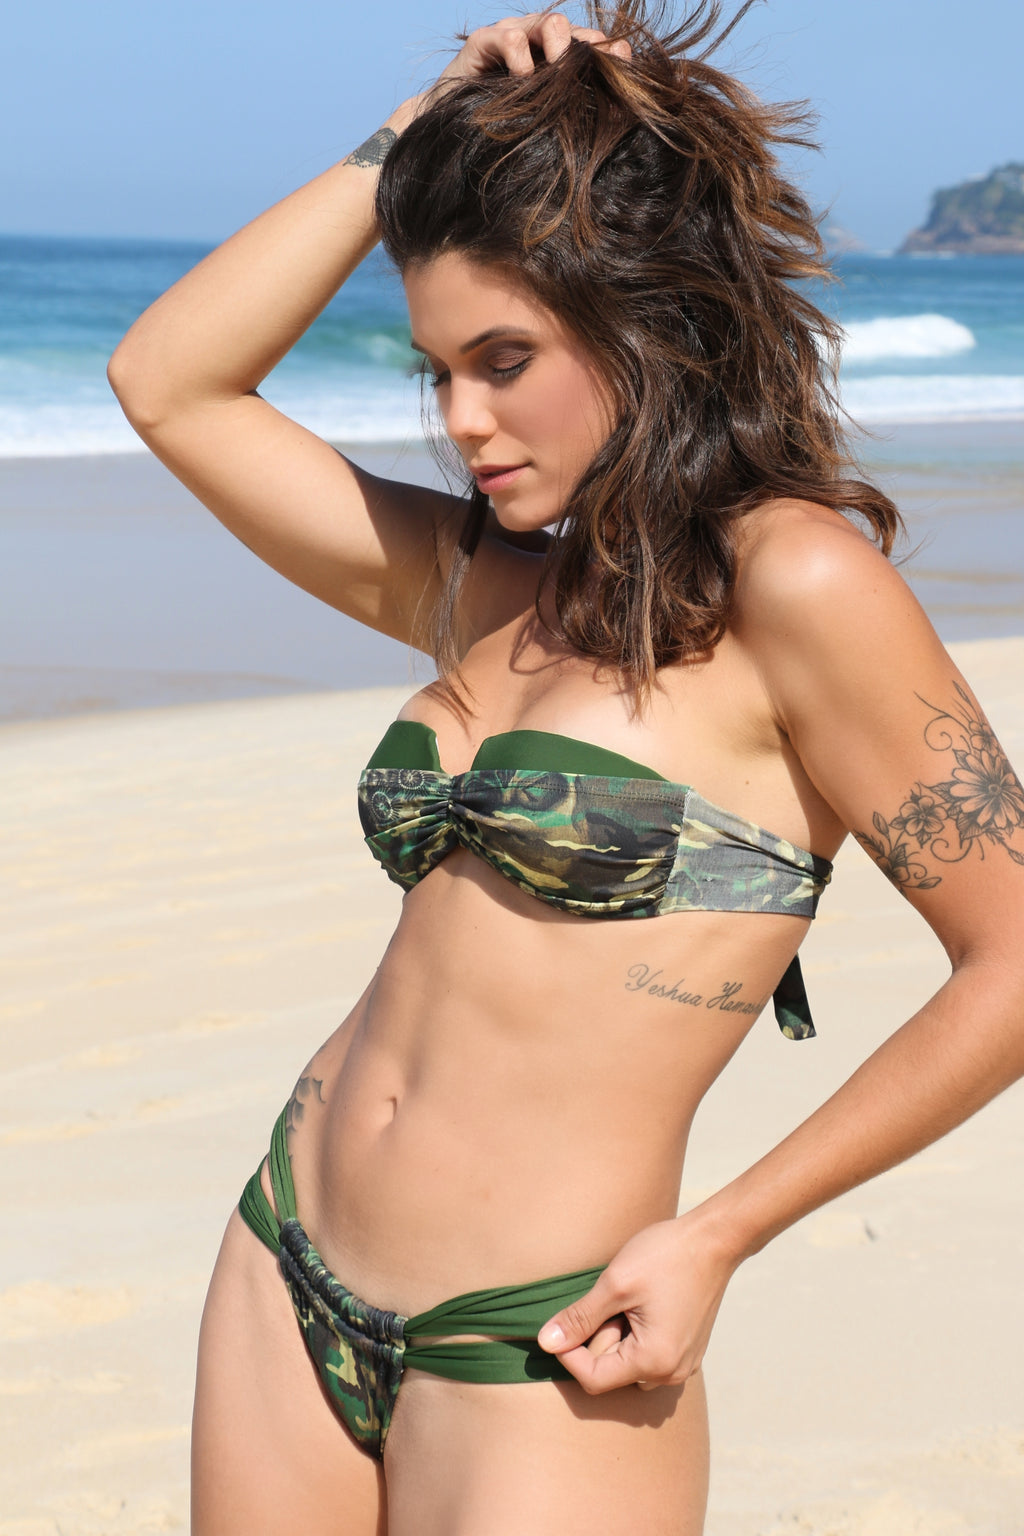 Beautiful Brazilian fashion bikini